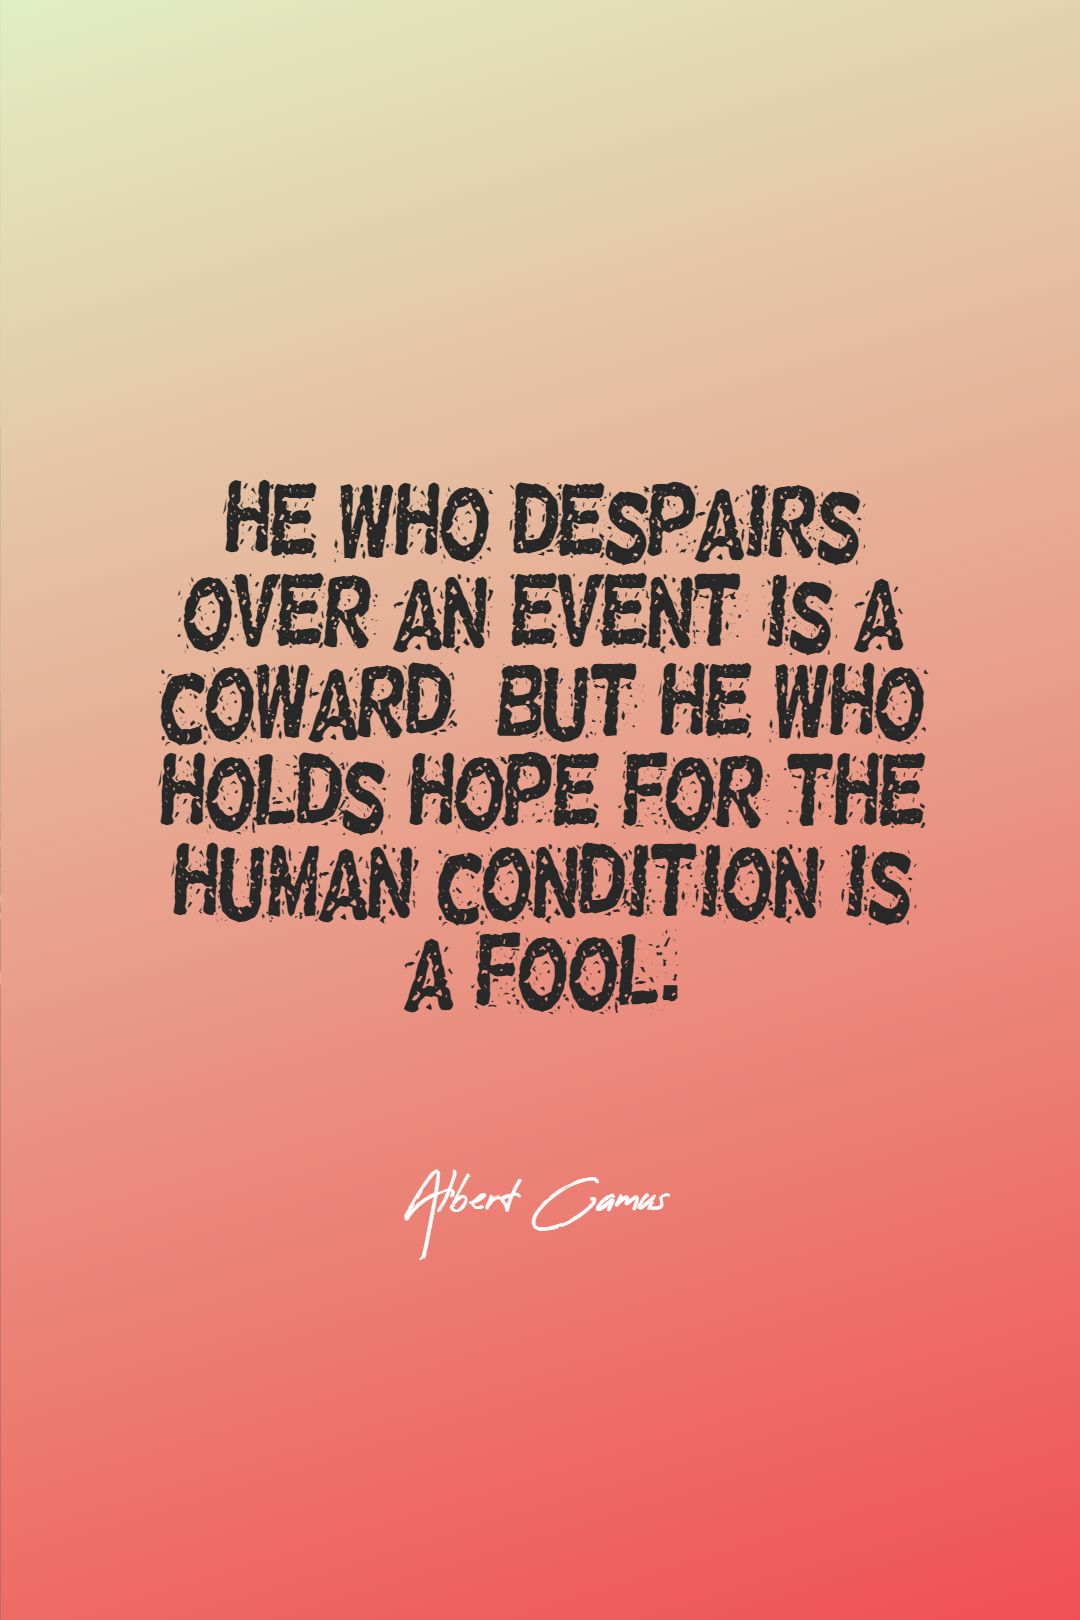 Quotes image of He who despairs over an event is a coward, but he who holds hope for the human condition is a fool.